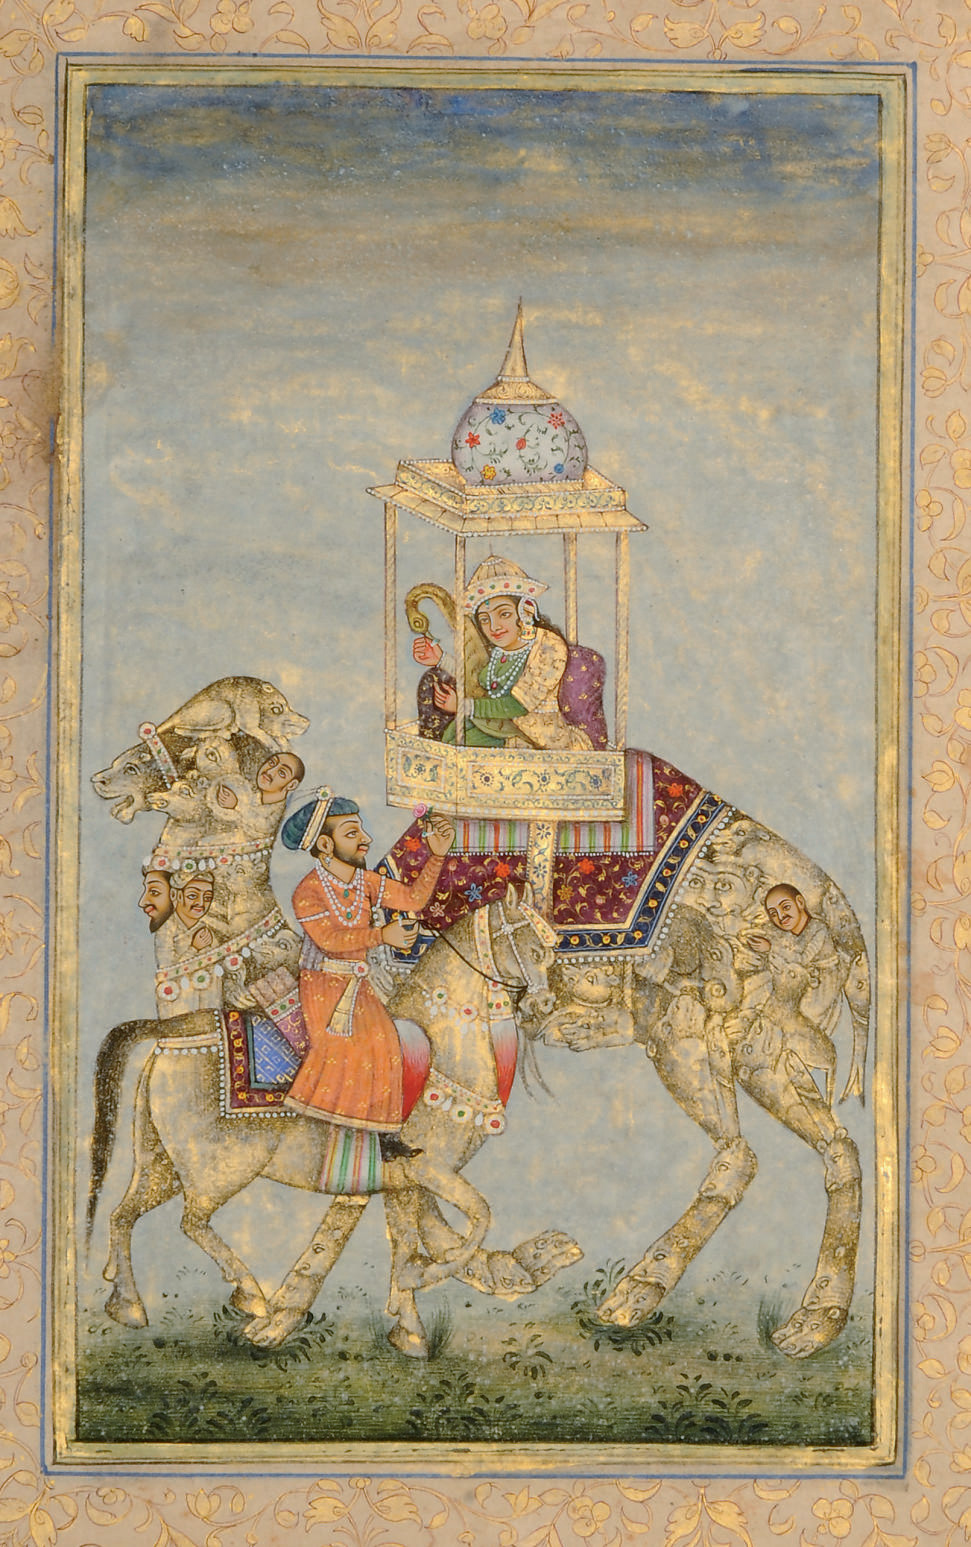 AN INDIAN PRINCE ON HORSEBACK WITH PRINCESS ON A COMPOSITE CAMEL